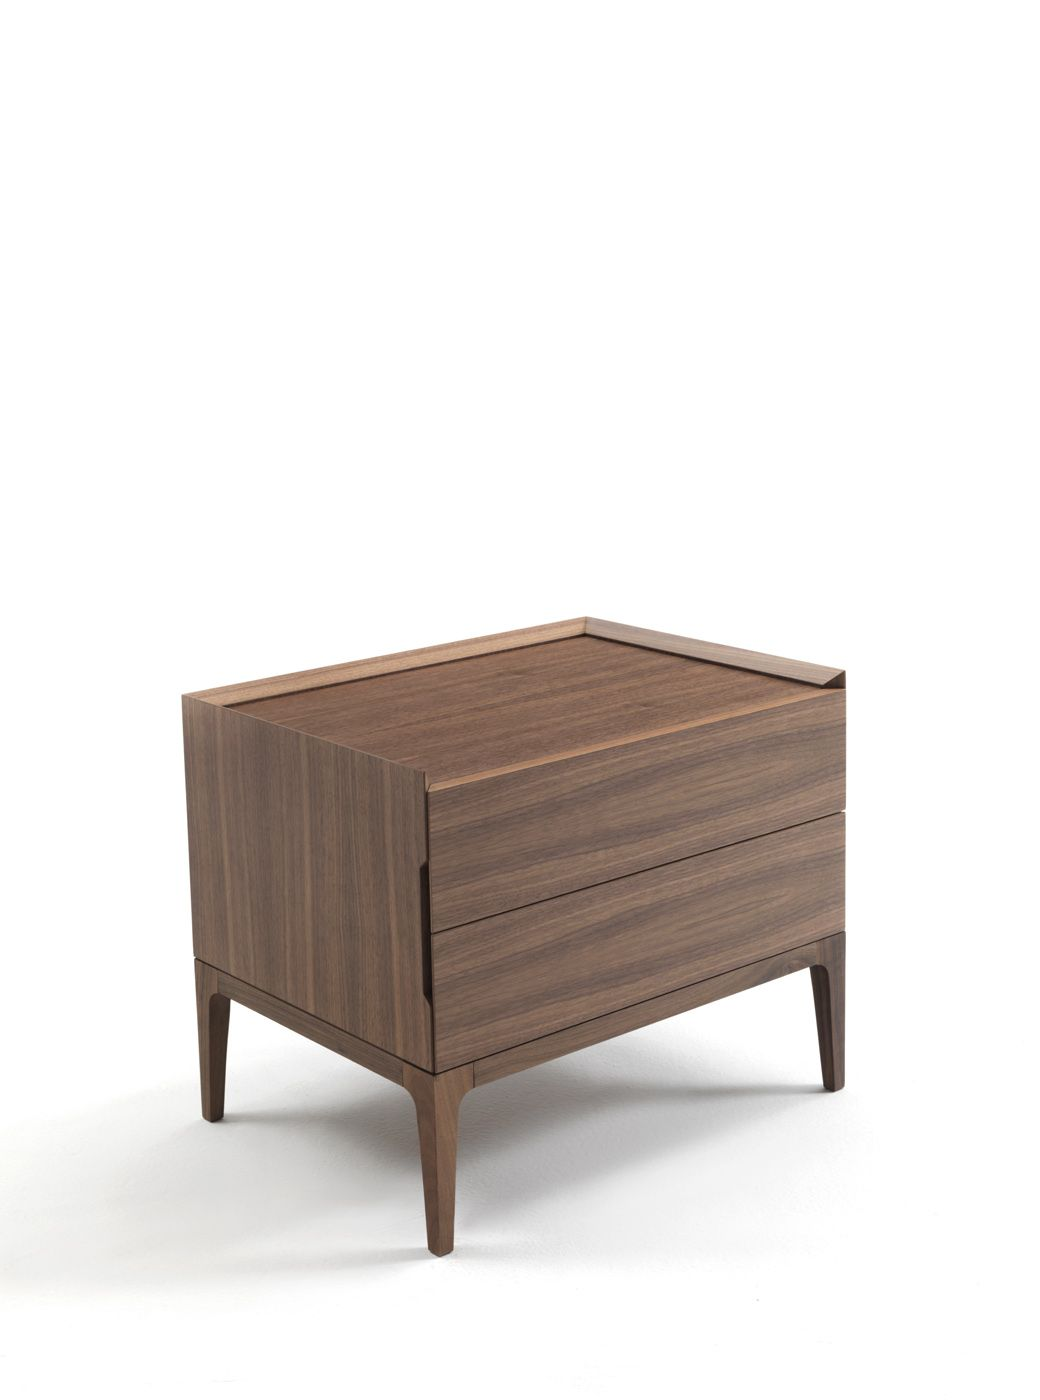 Porada arredi srl bedside table pinterest night for Porada arredi srl